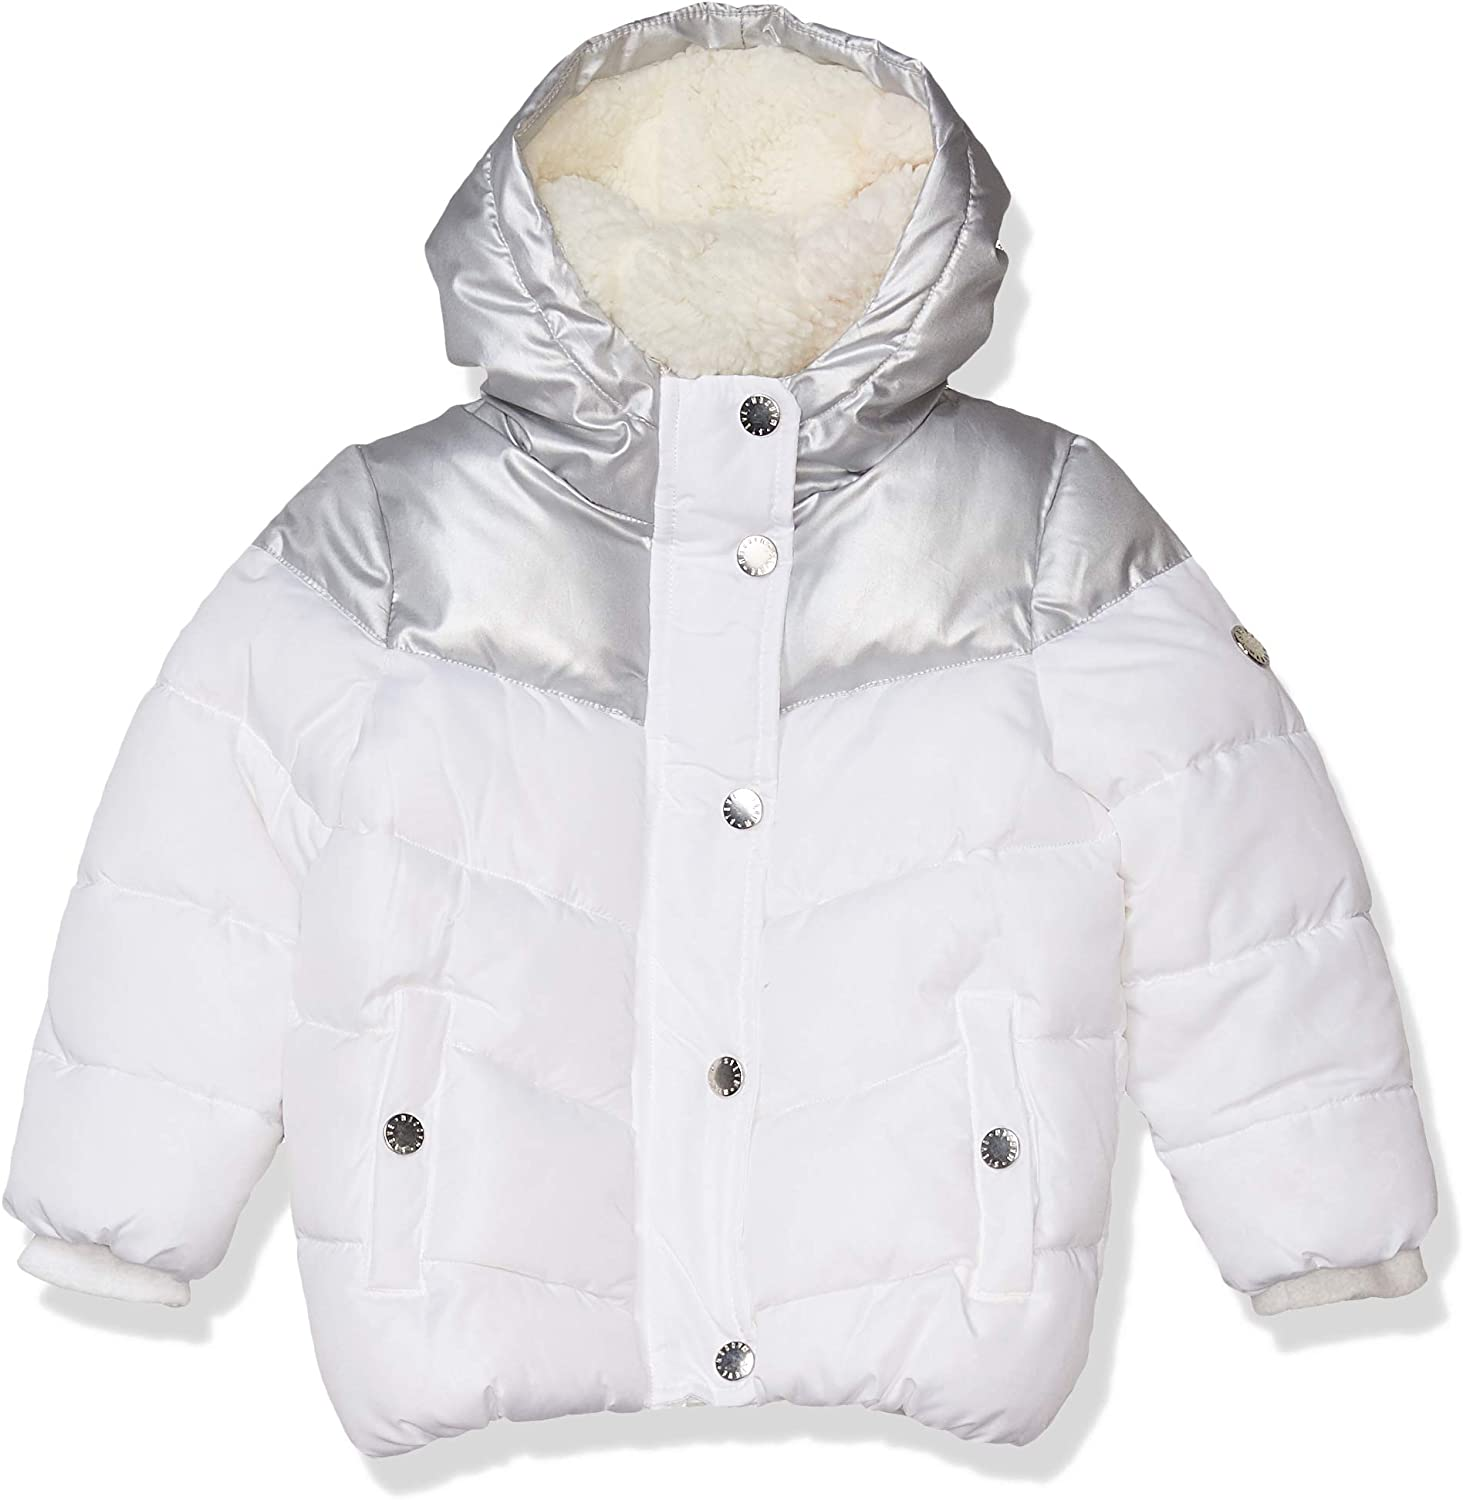 Steve Madden Girls' Bubble Popular Limited time trial price Jacket Styles Sizes Baby-Big More